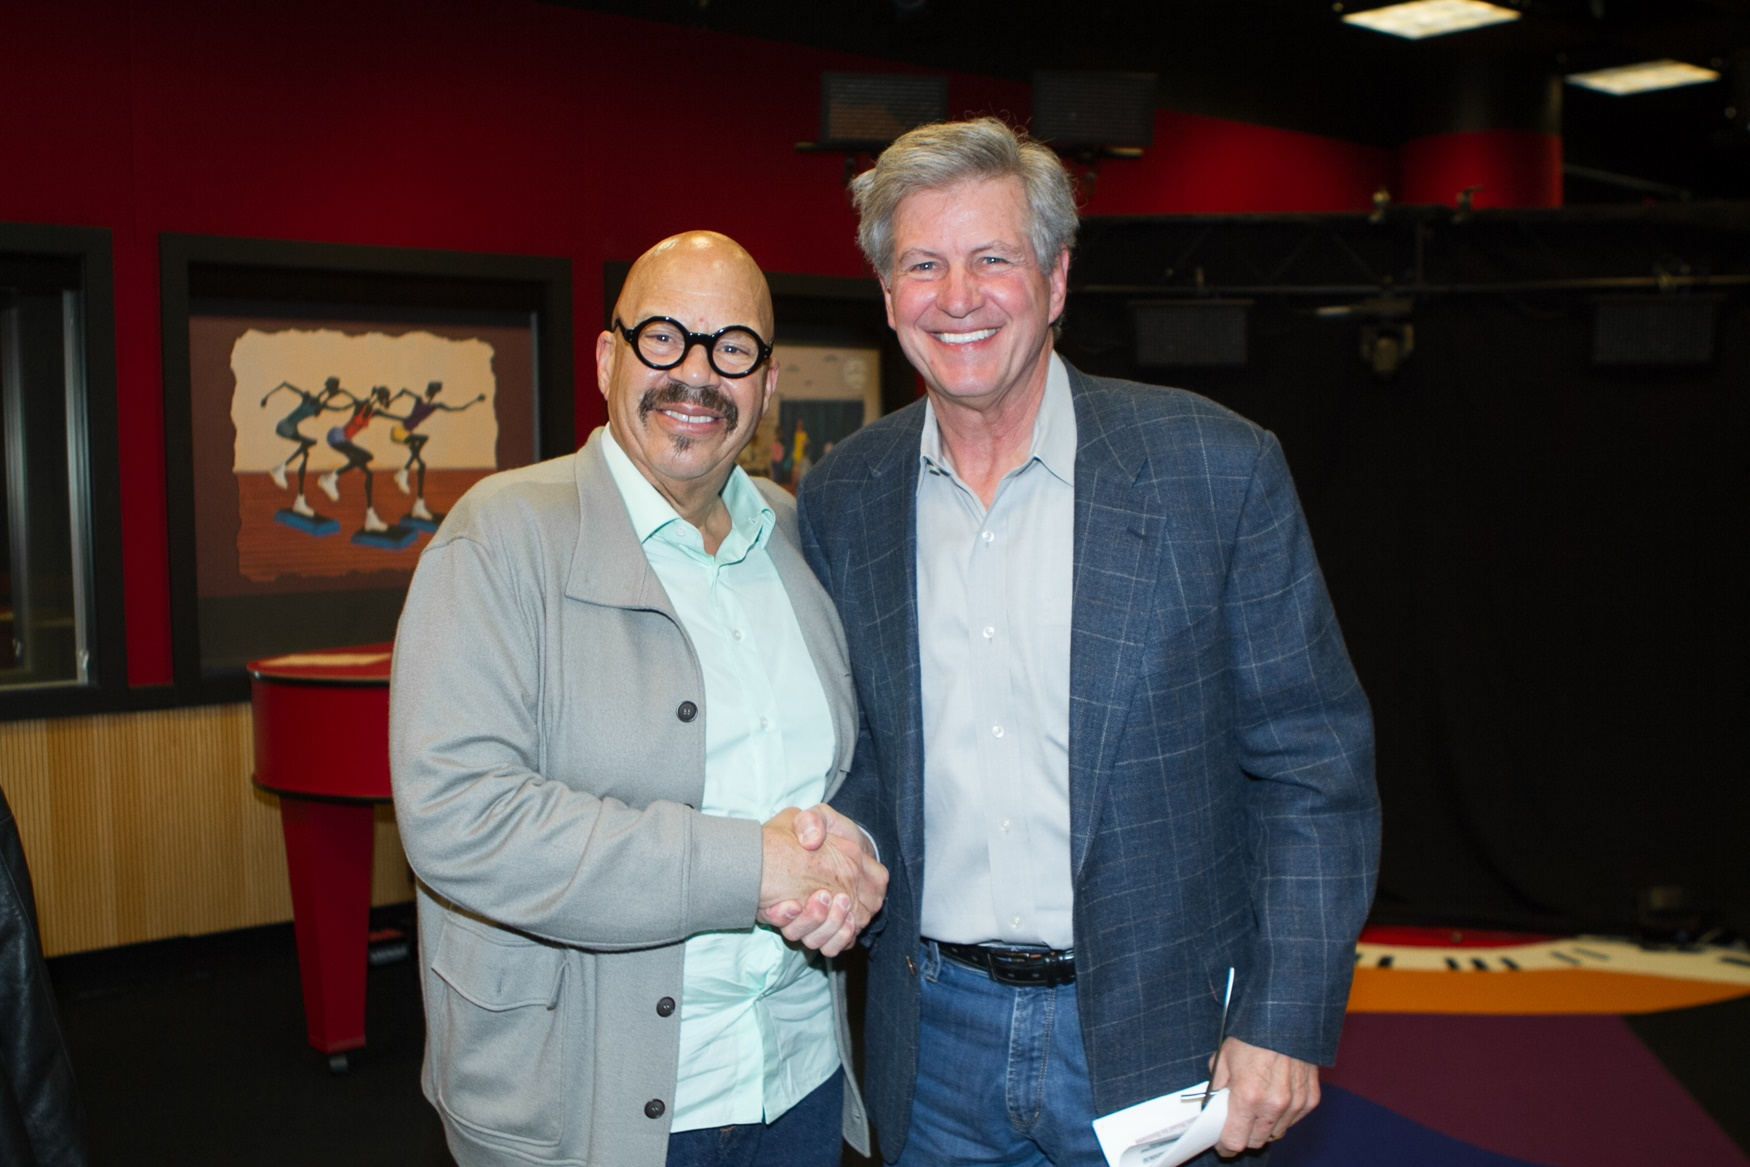 Denny's President John Miller Talks with the Tom Joyner Morning Show